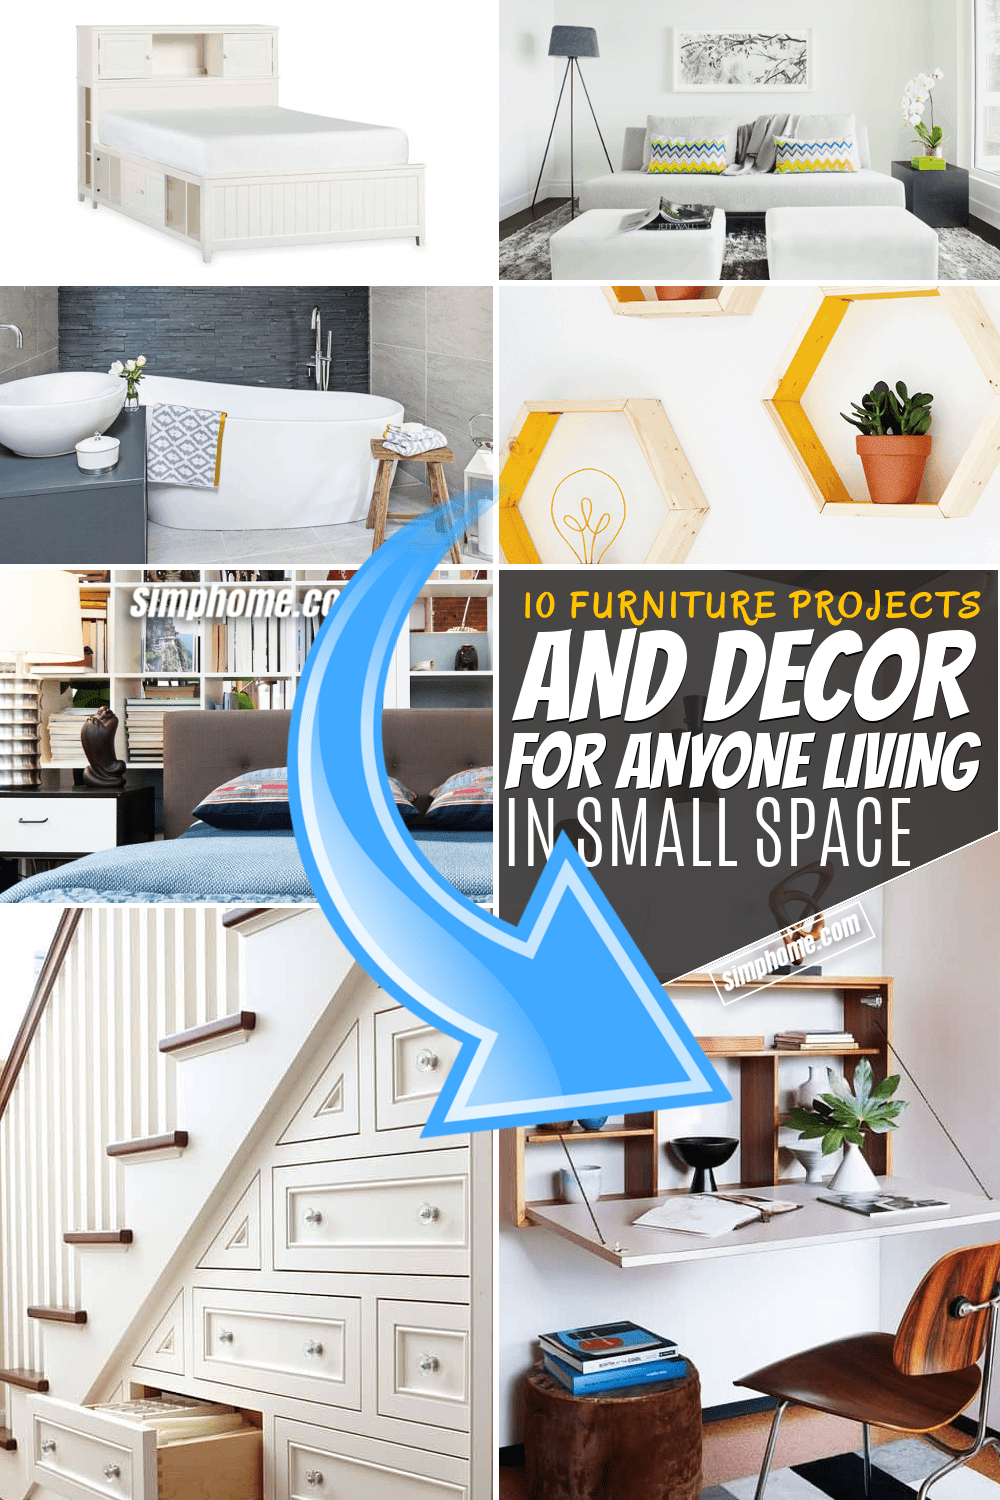 Simphome.com 10 Home Decor Furniture Ideas for Anyone Living in A Small Space Pinterest Featured Image